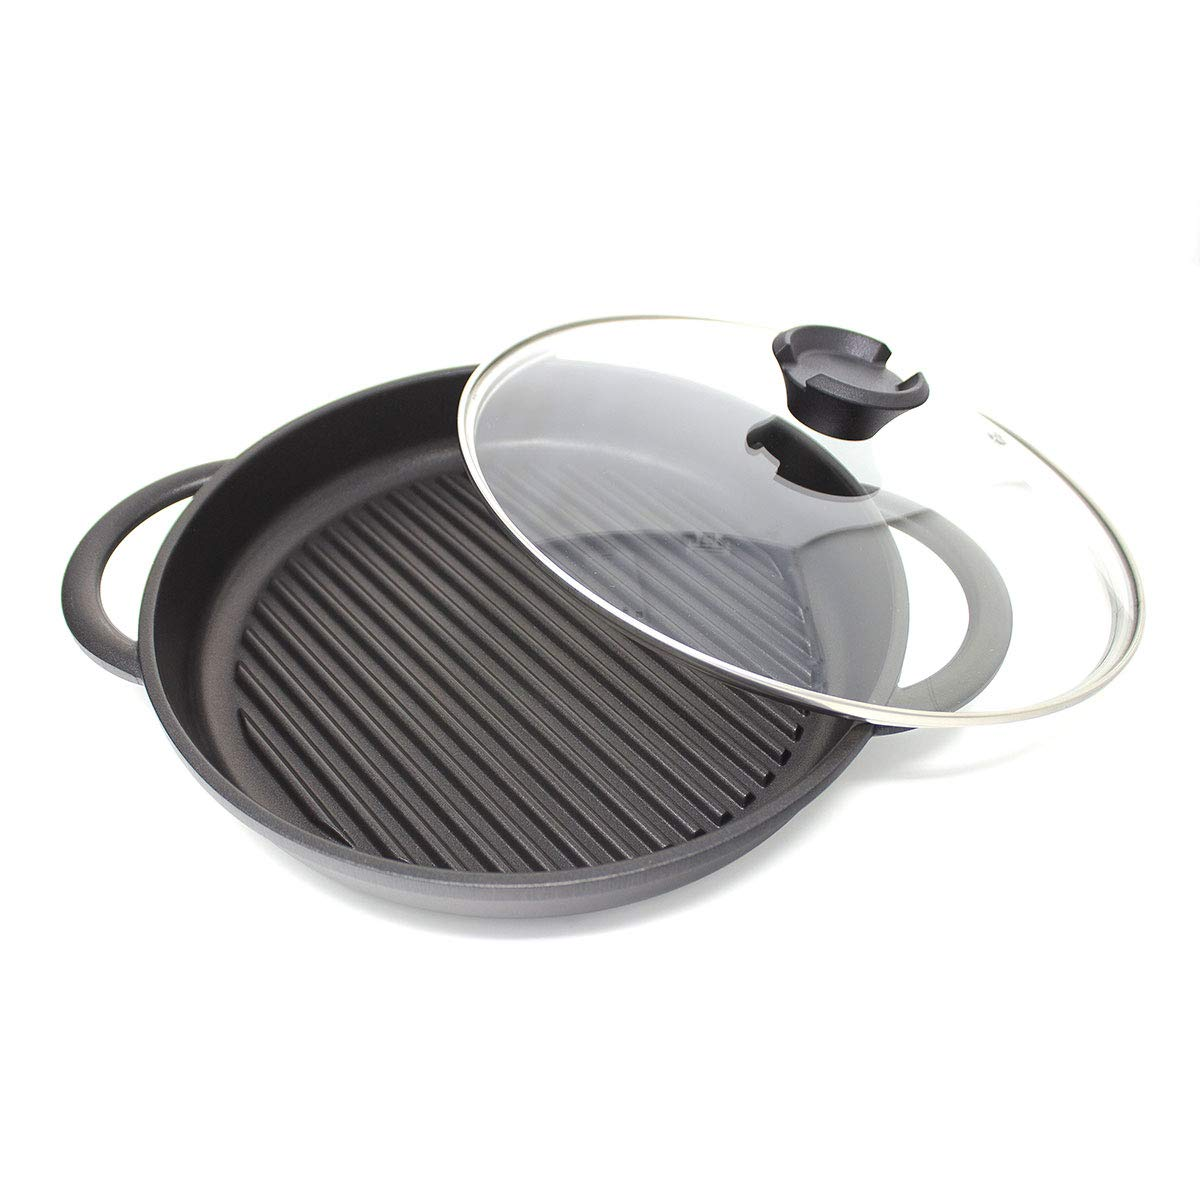 Jean Patrique The Whatever Pan - Cast Aluminium Griddle Pan with Glass Lid by JEAN PATRIQUE